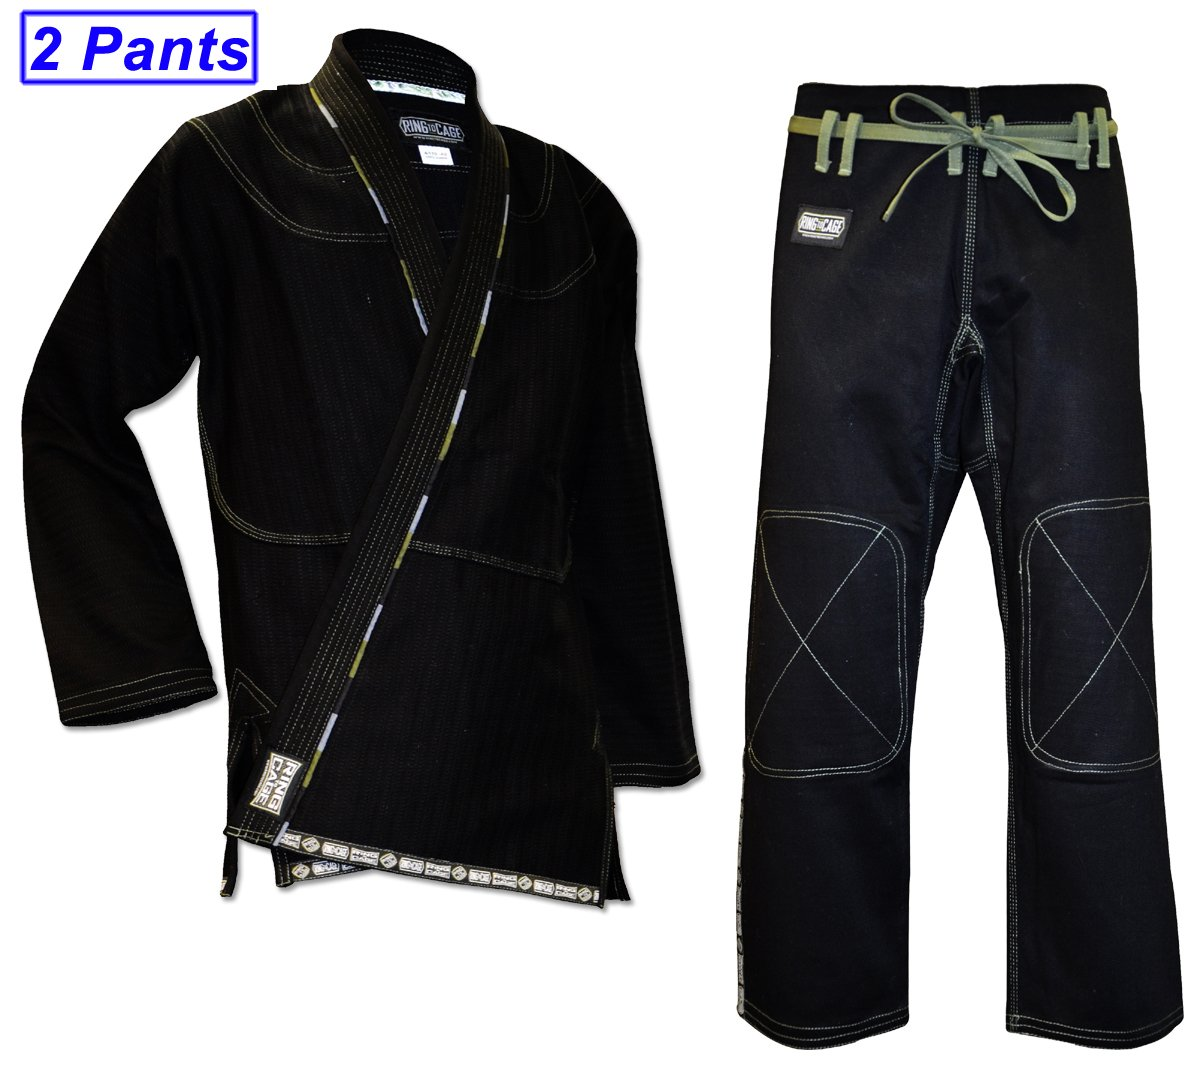 Ring to Cage ULTIMA Brazilian Jiu Jitsu Gi with 2 Pairs of Pants - Black (A2) by Ring to Cage